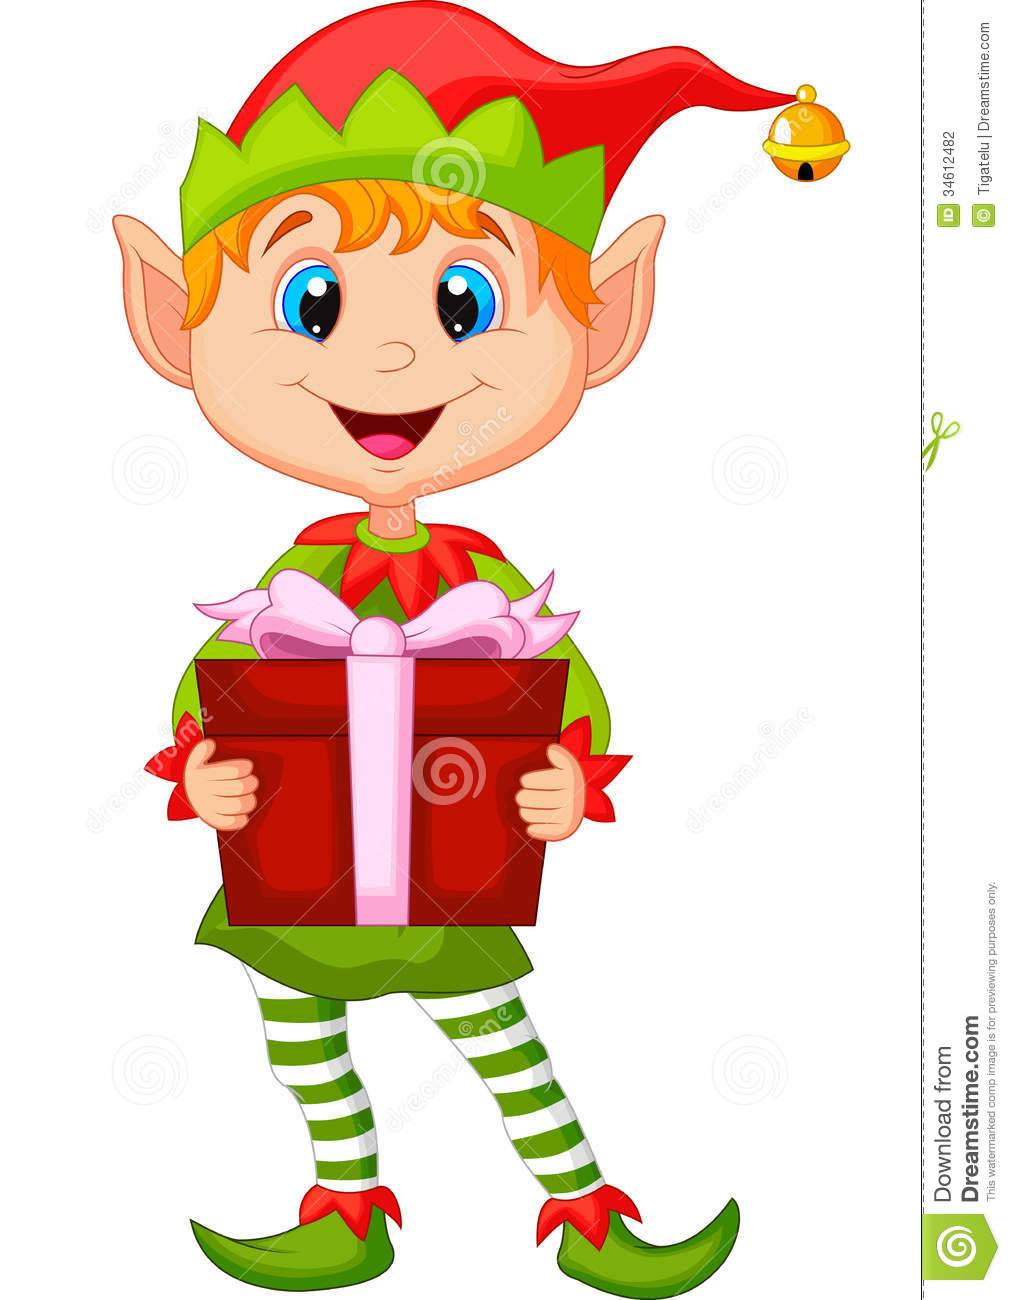 Lady elf clipart suggest